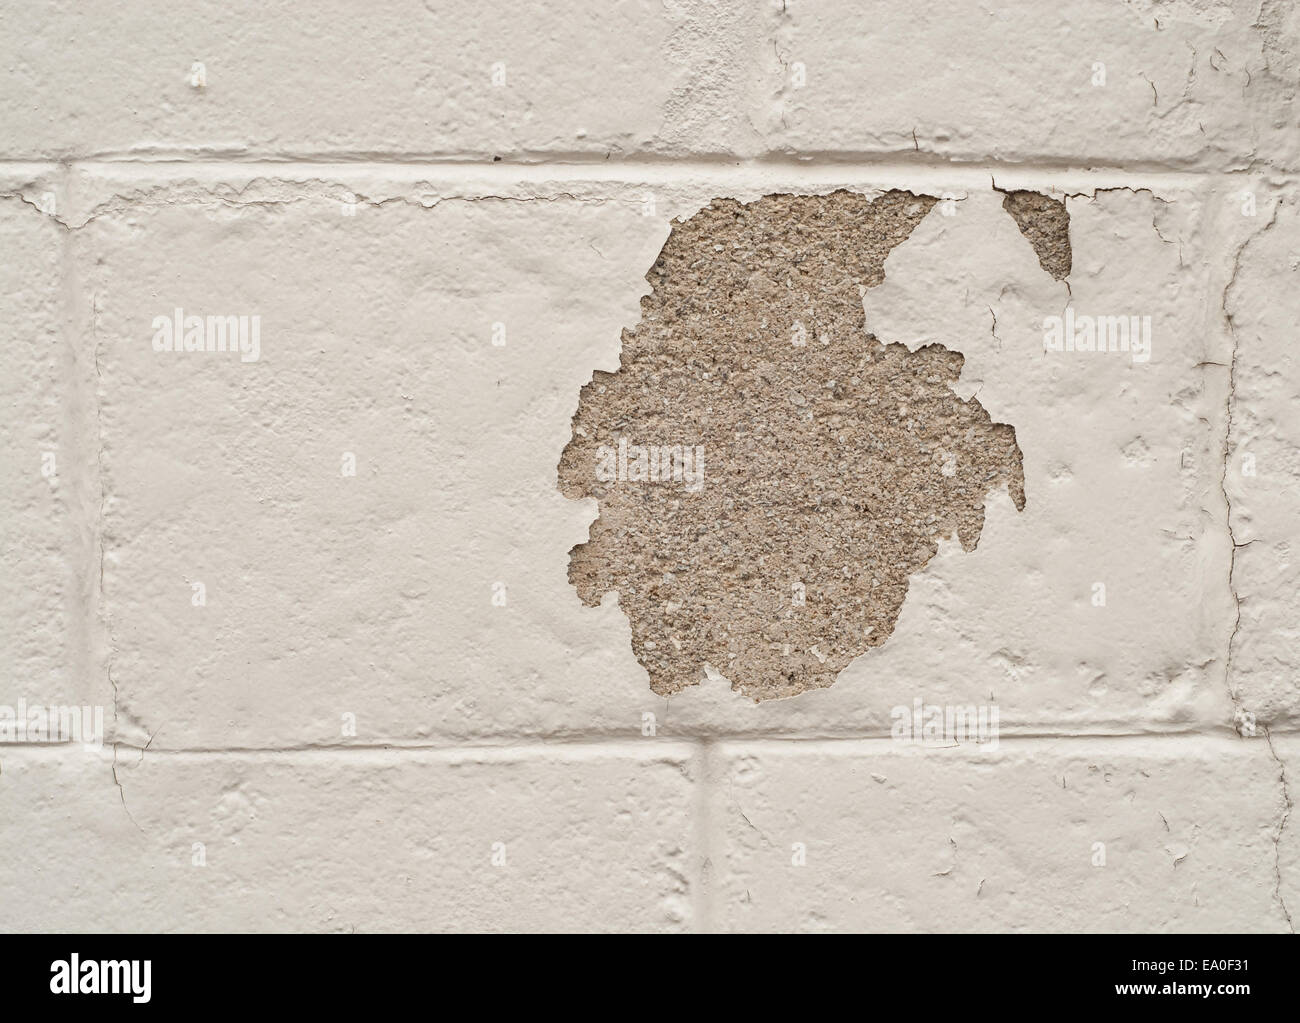 Painted cinder block wall texture - Stock Photo White Painted Cinder Block Wall With A Patch Of Missing Paint